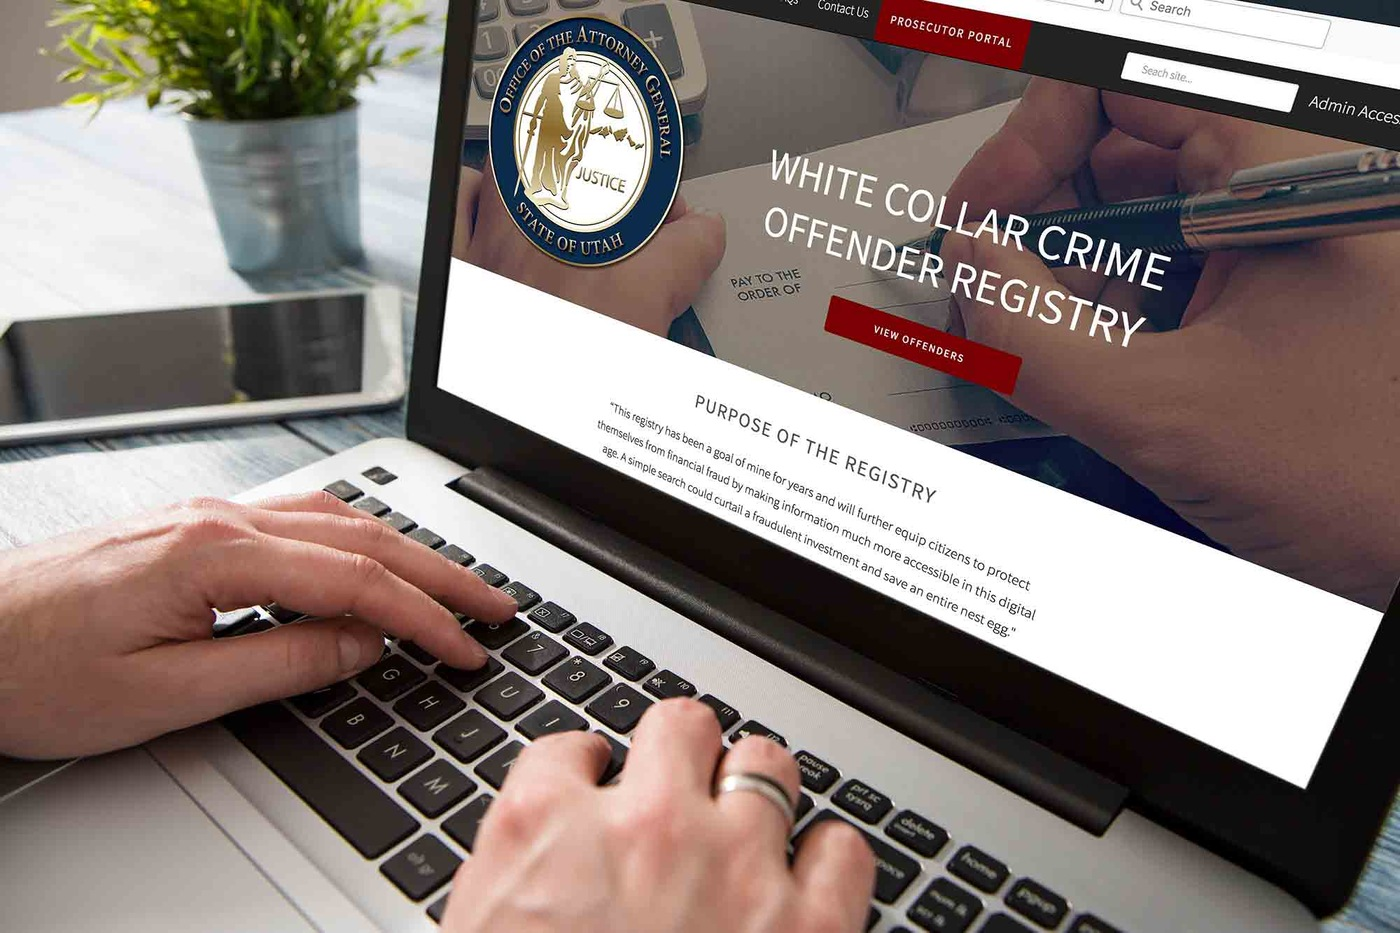 White-Collar Crime Offender Registry Website (Stock)